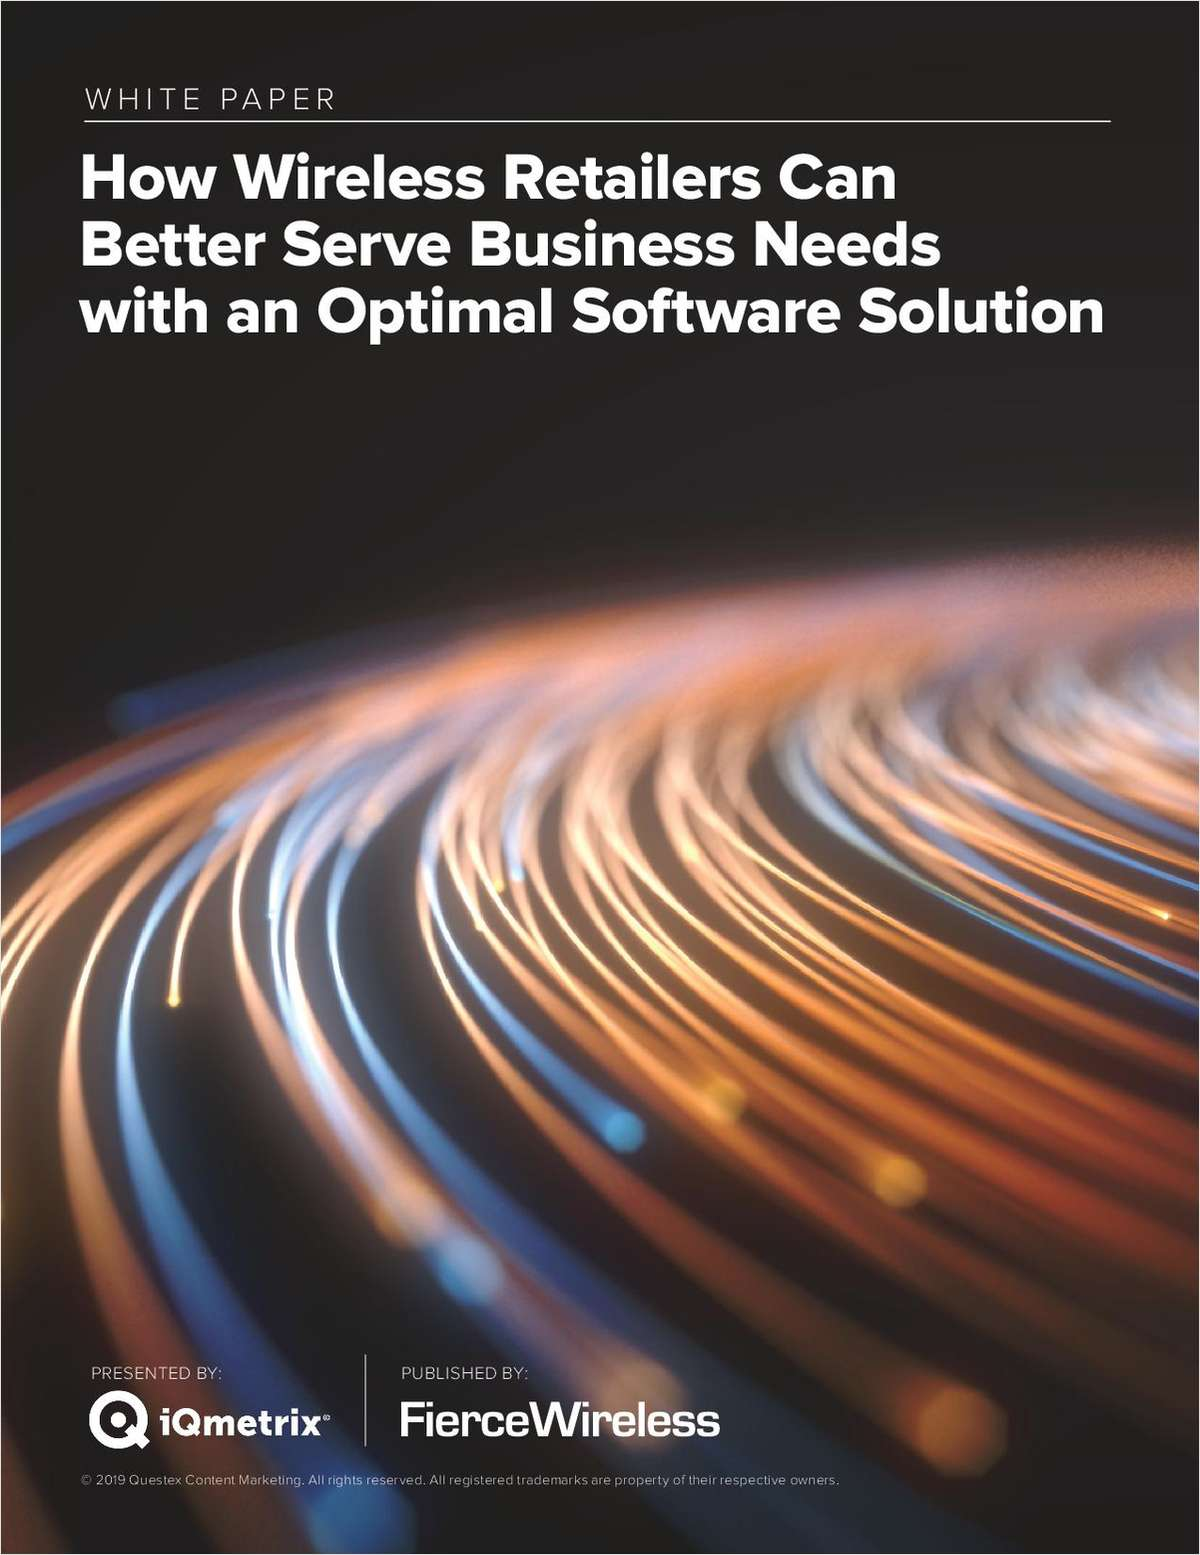 How Wireless Retailers Can Better Serve Business Needs with an Optimal Software Solution